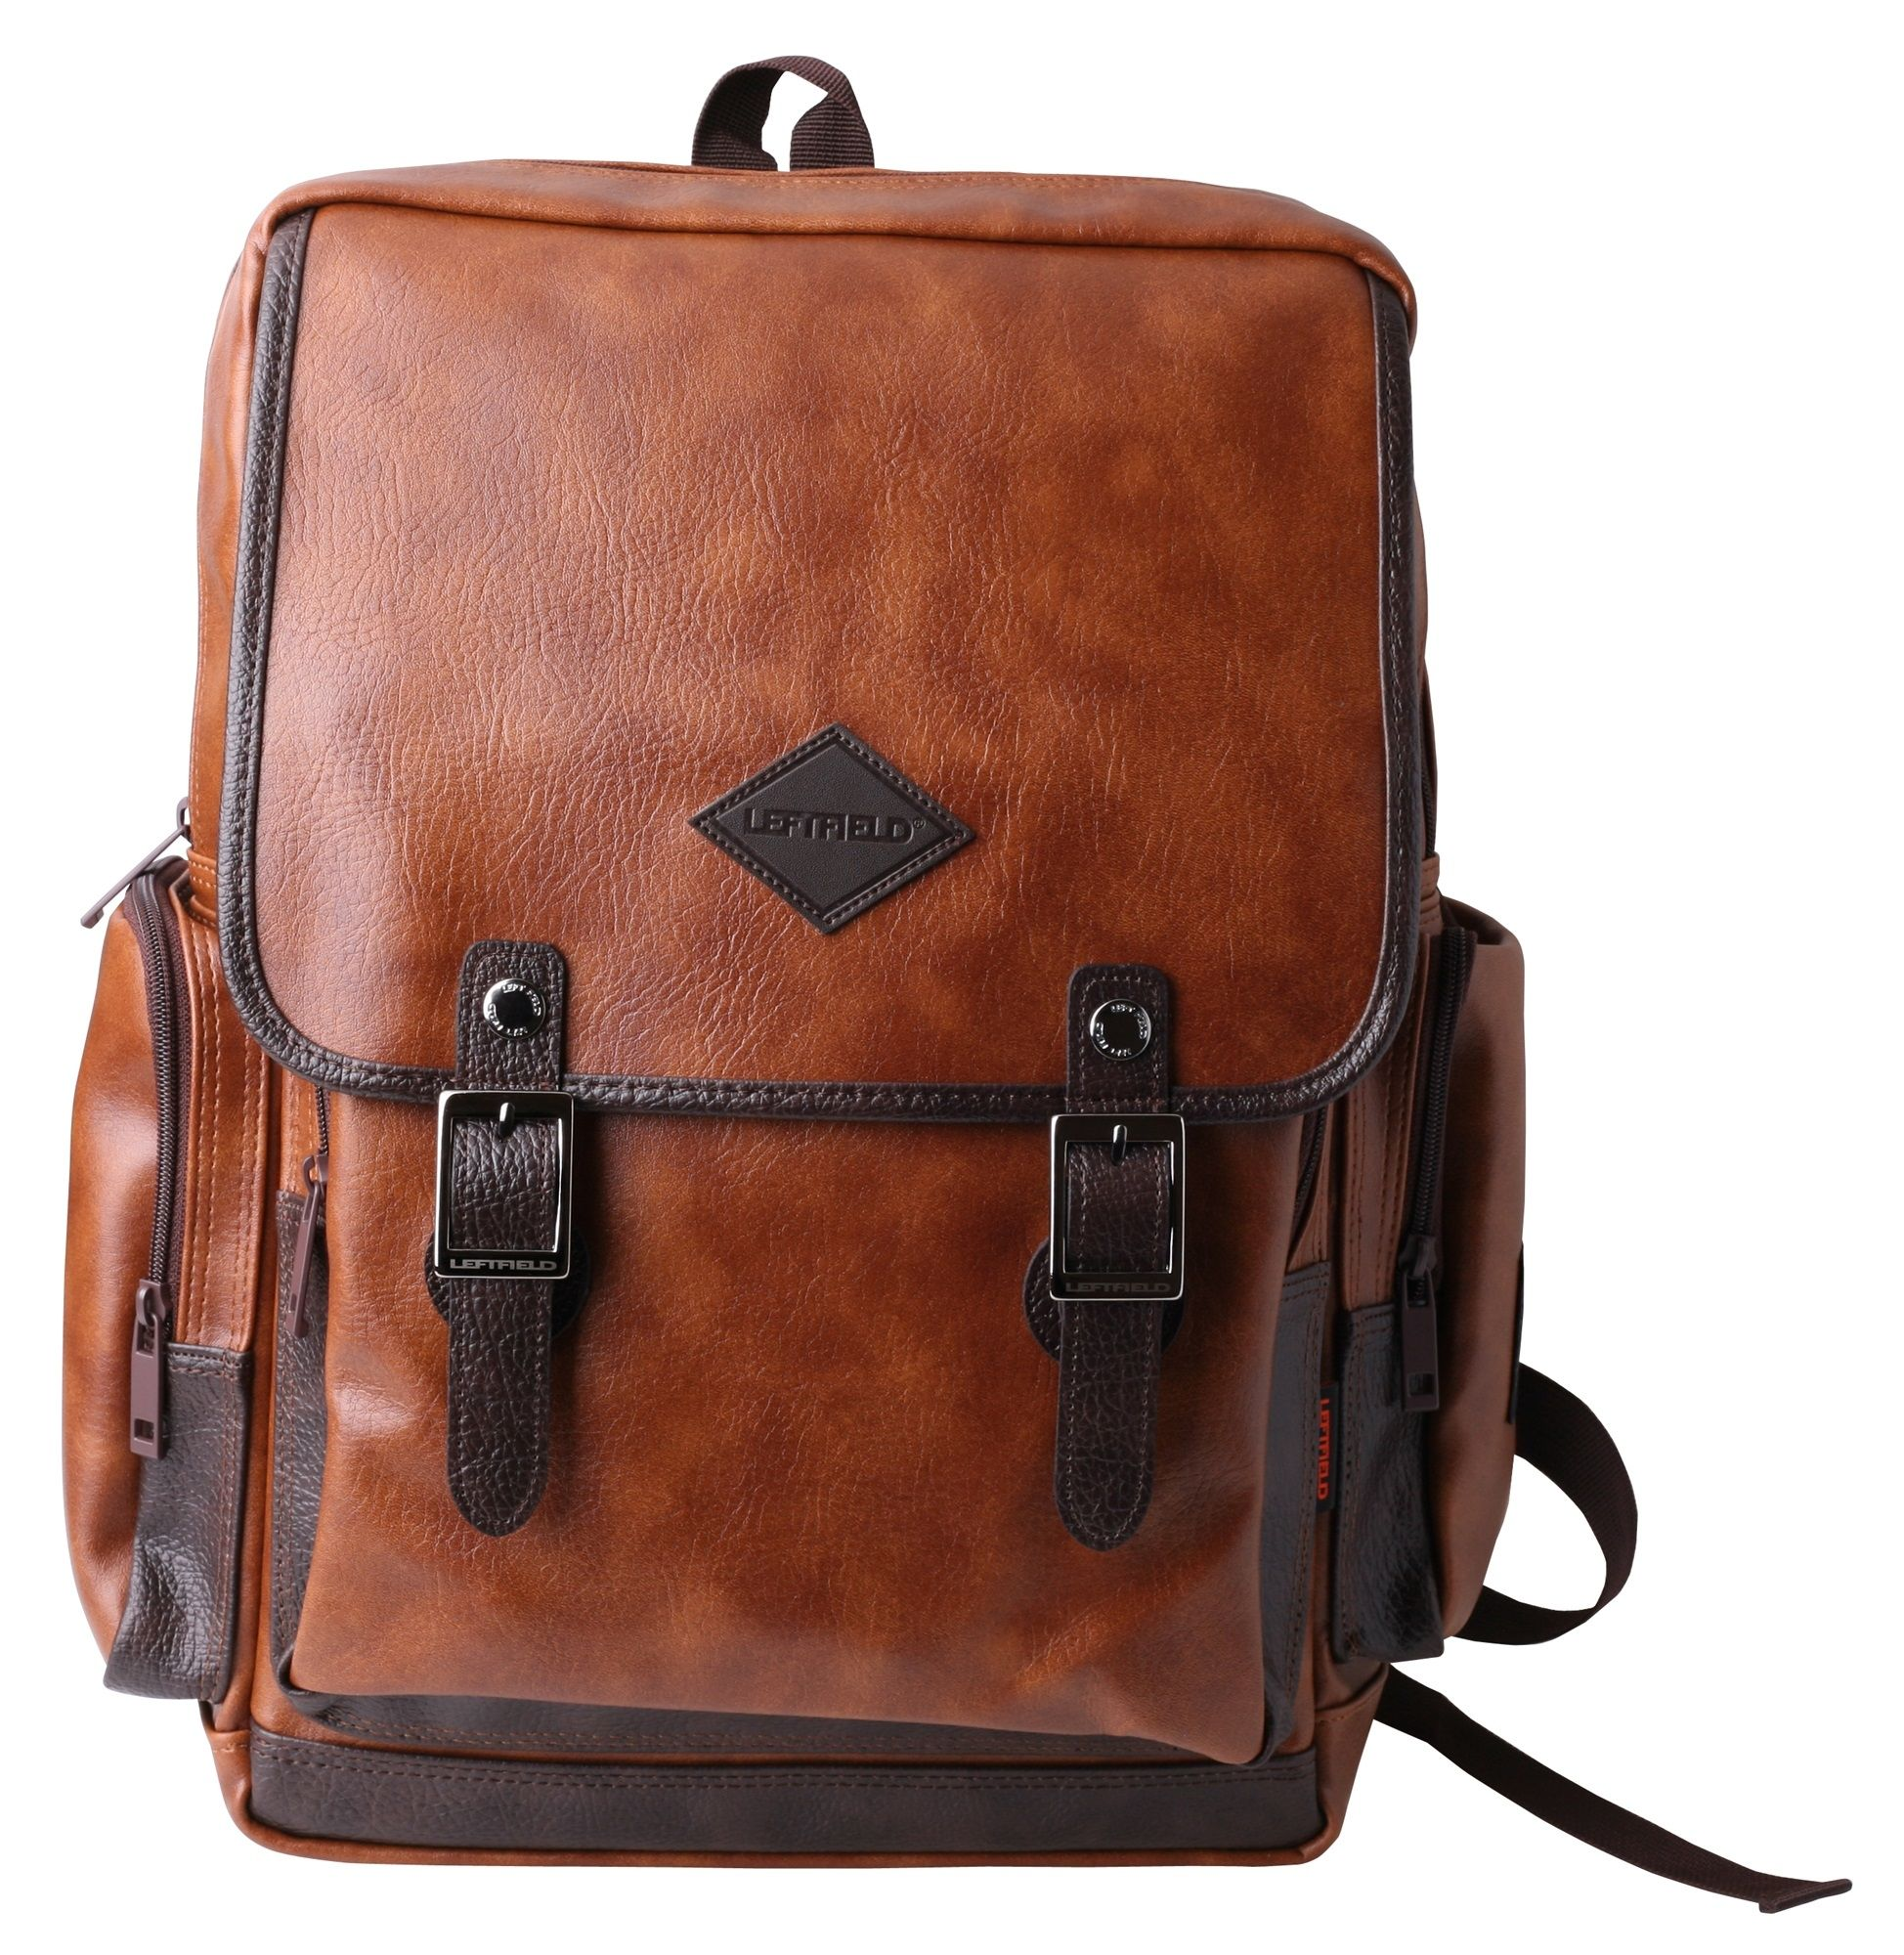 5225b7997a Korean casual fashion backpacks for men and women. Vintage faux leather  laptop backpacks